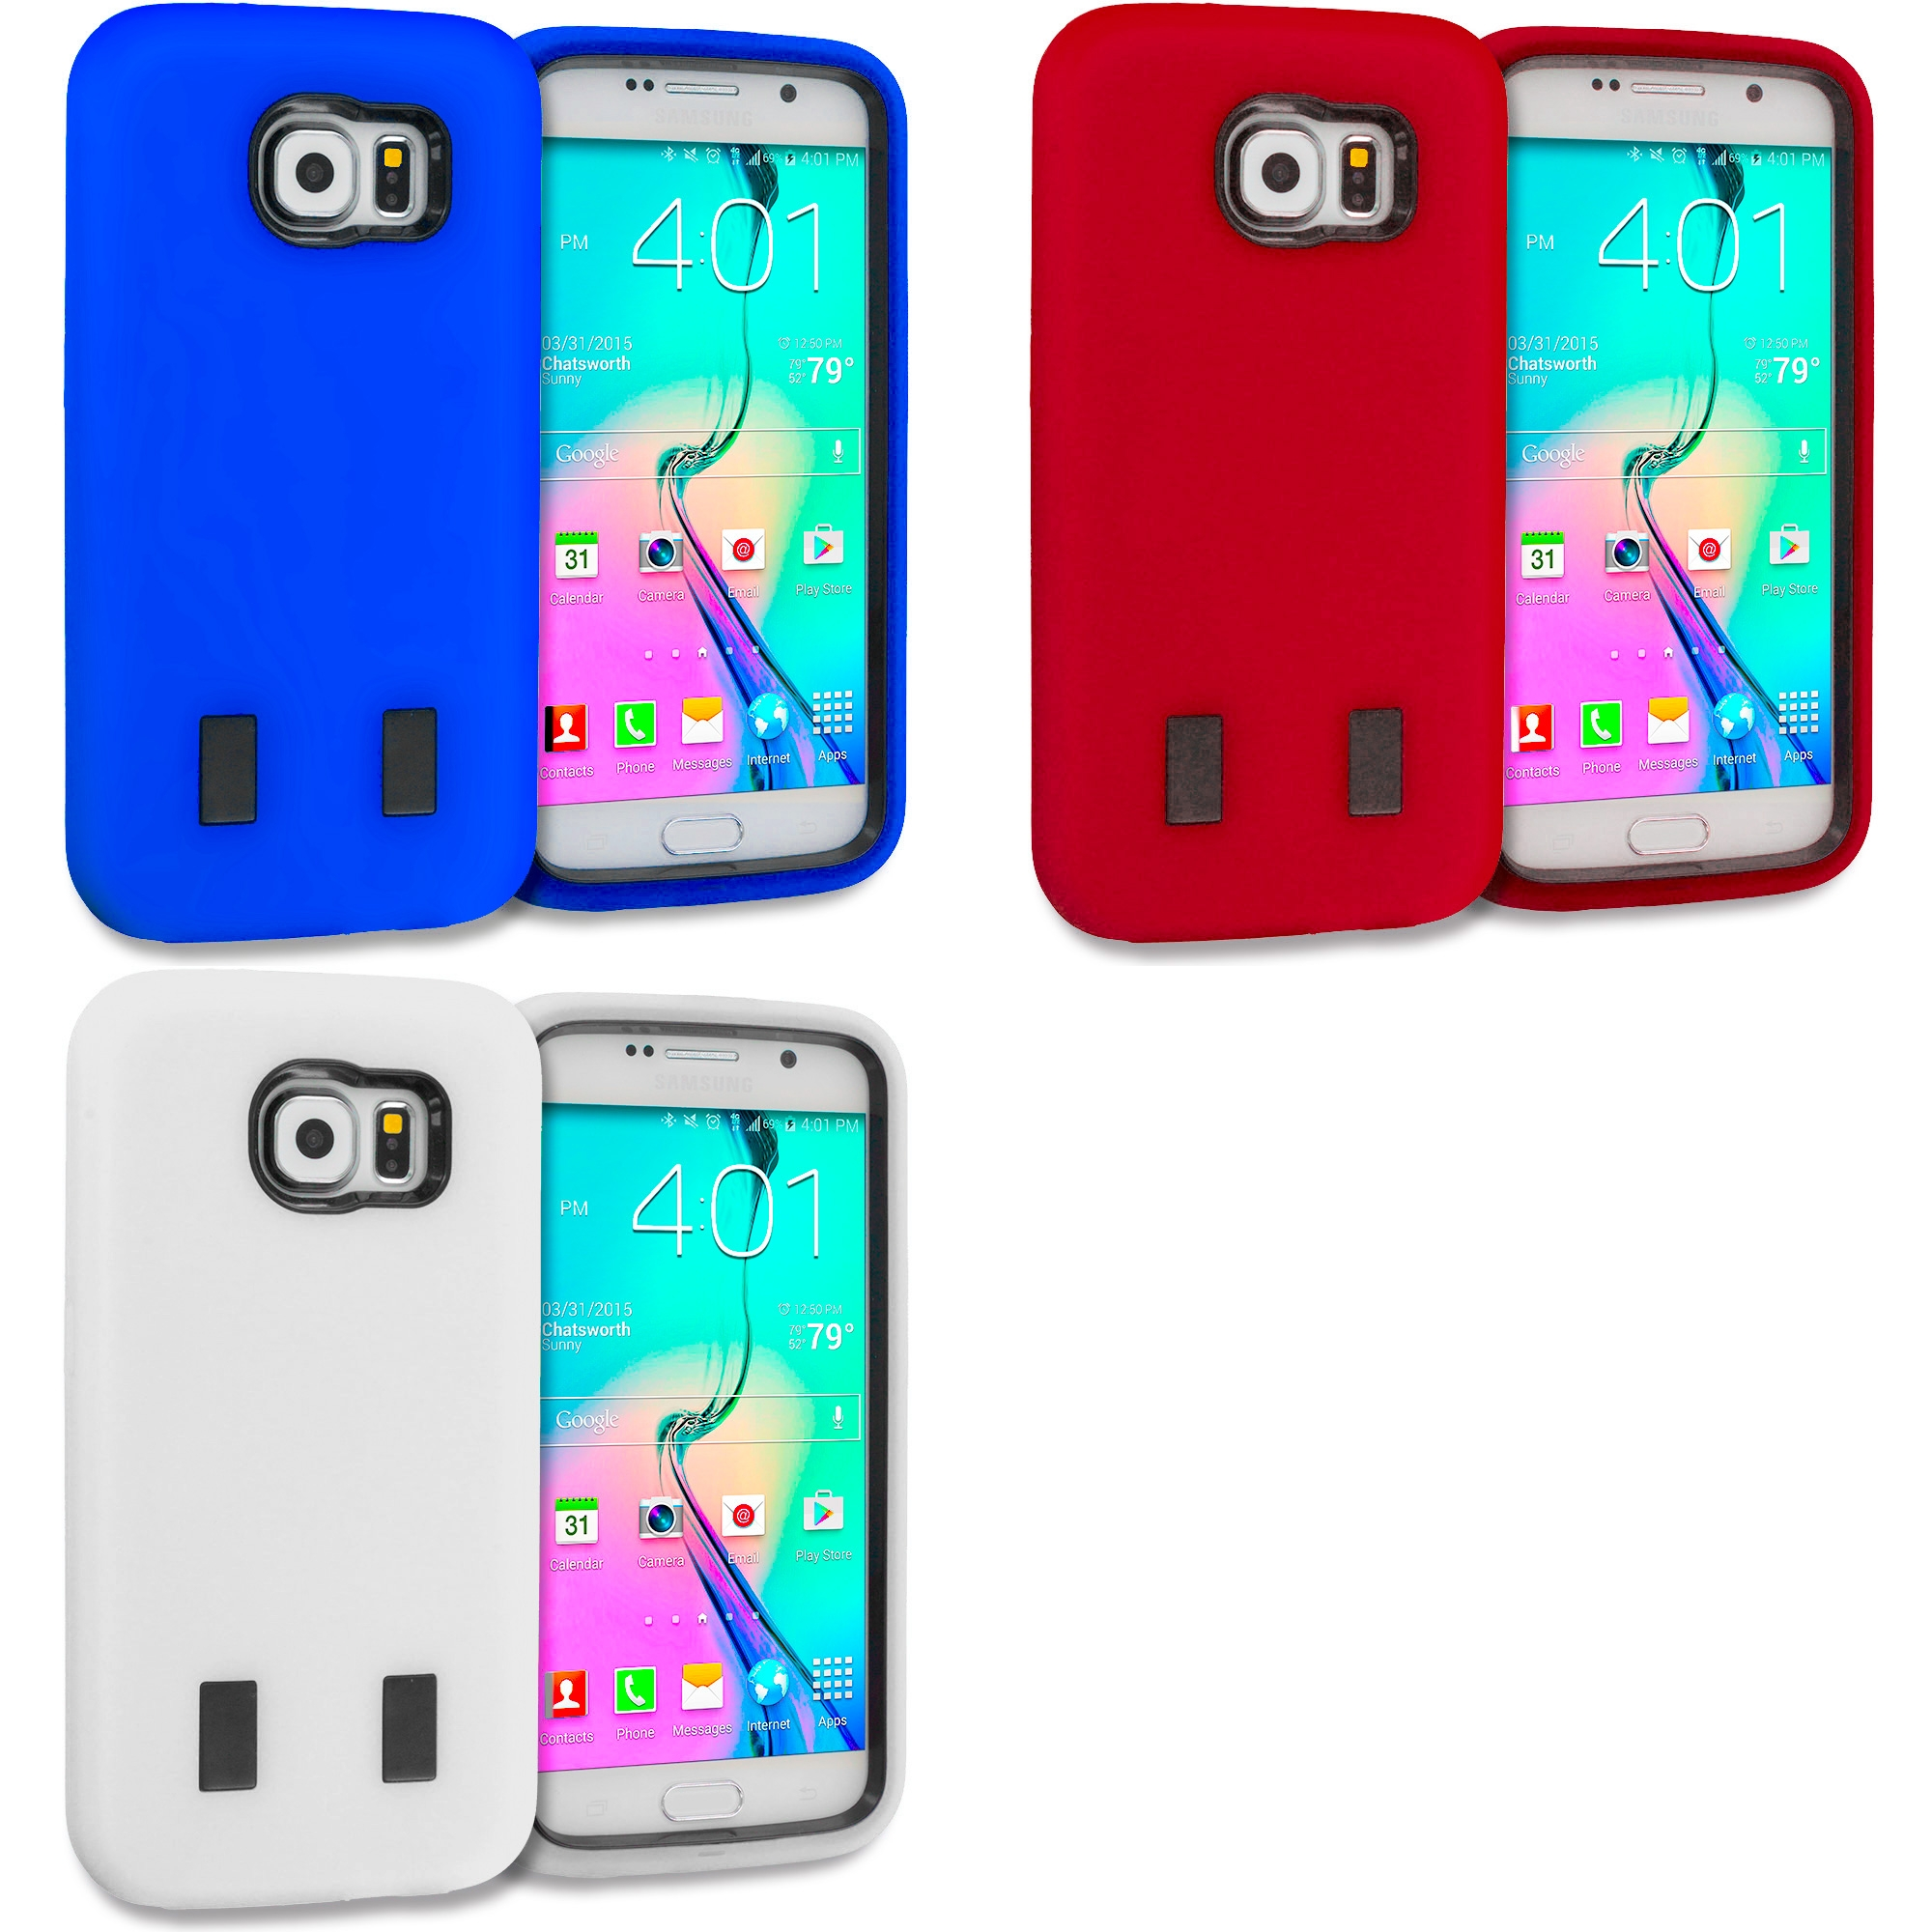 Samsung Galaxy S6 Combo Pack : Red / Black Hybrid Deluxe Hard/Soft Case Cover